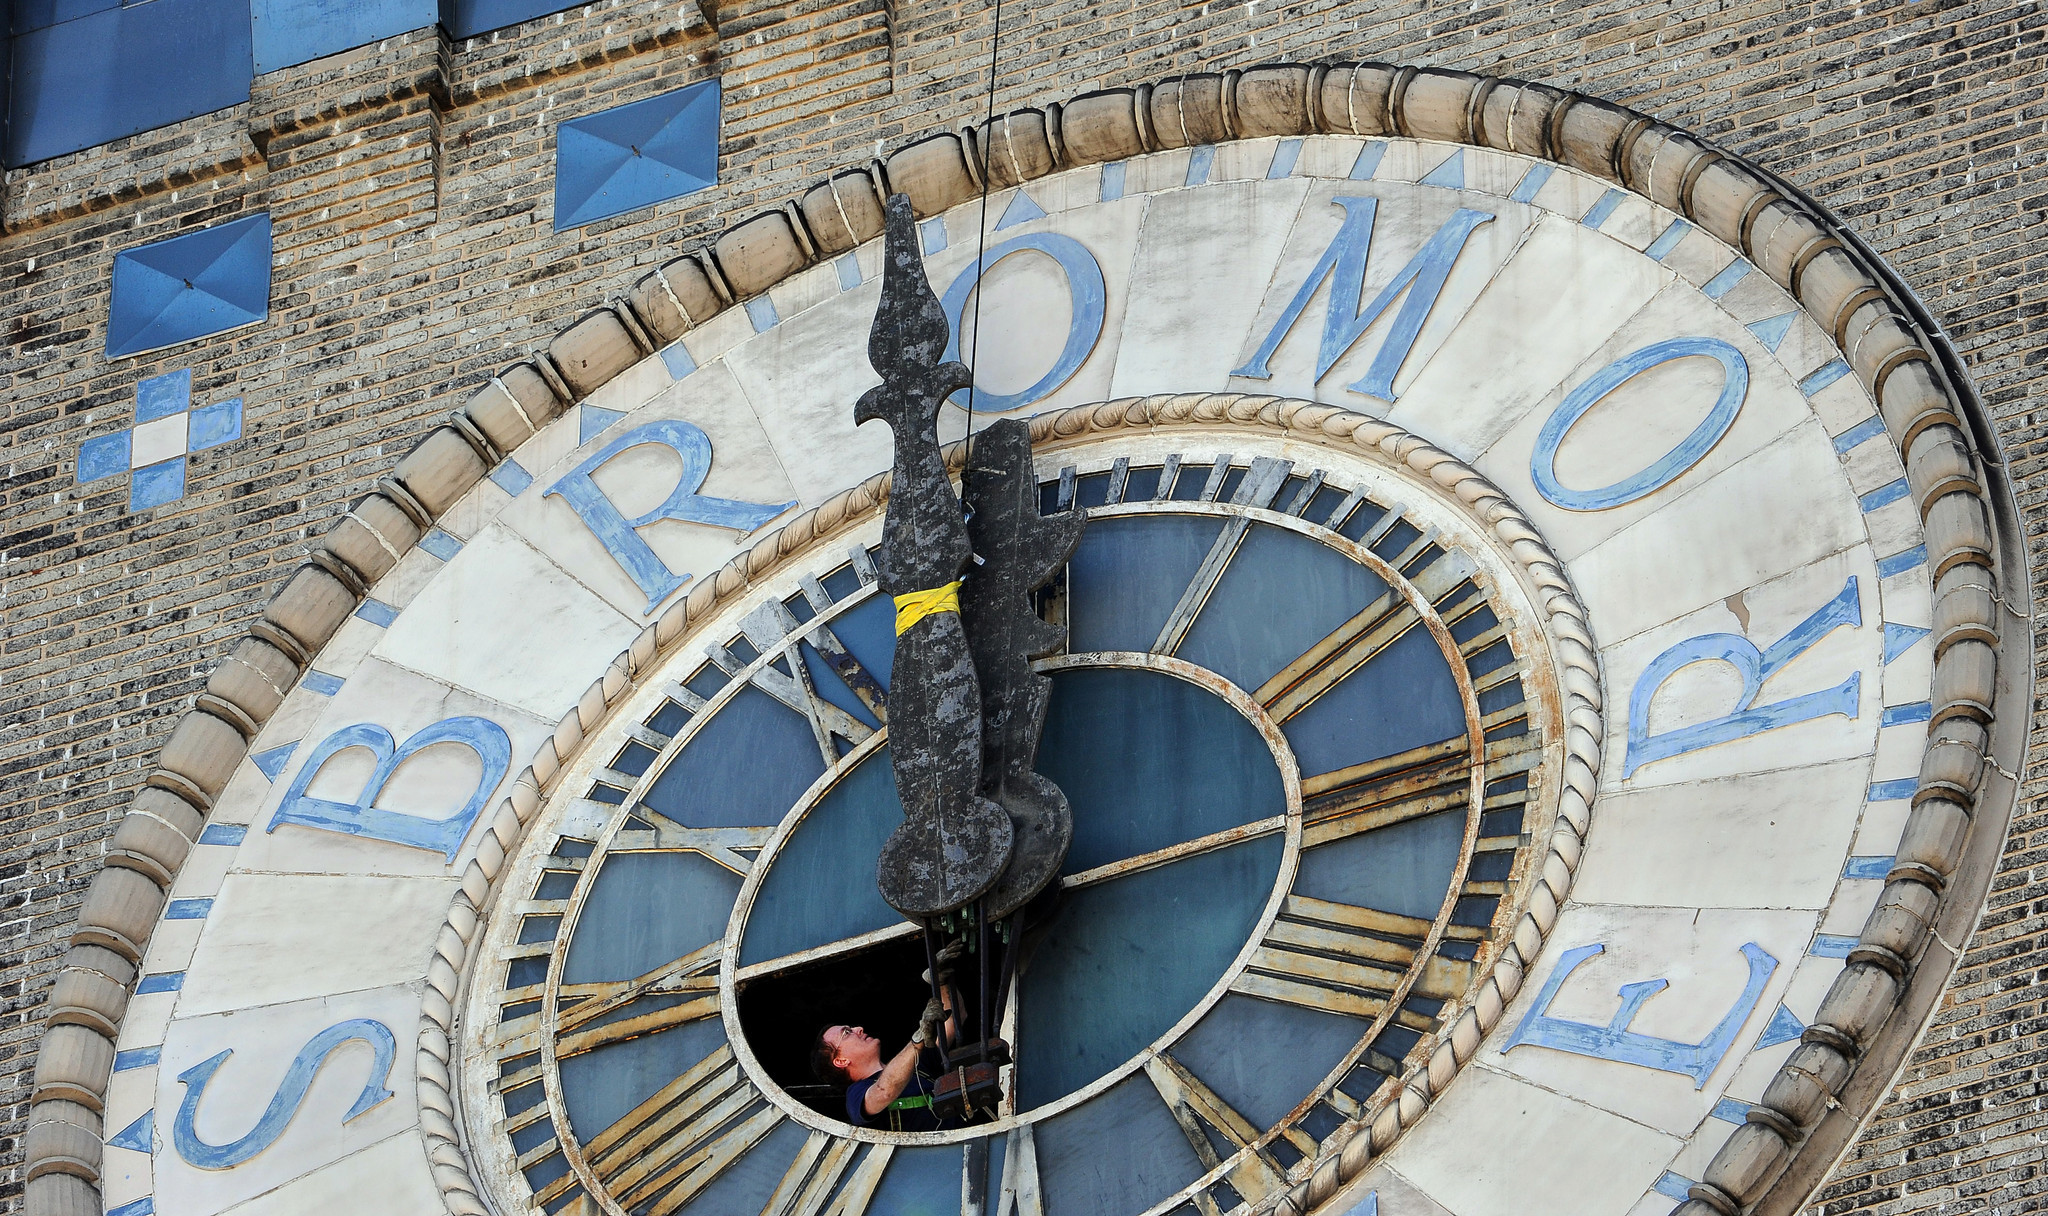 Bromo seltzer tower 39 s clock loses its hands as major for Major motors baltimore maryland